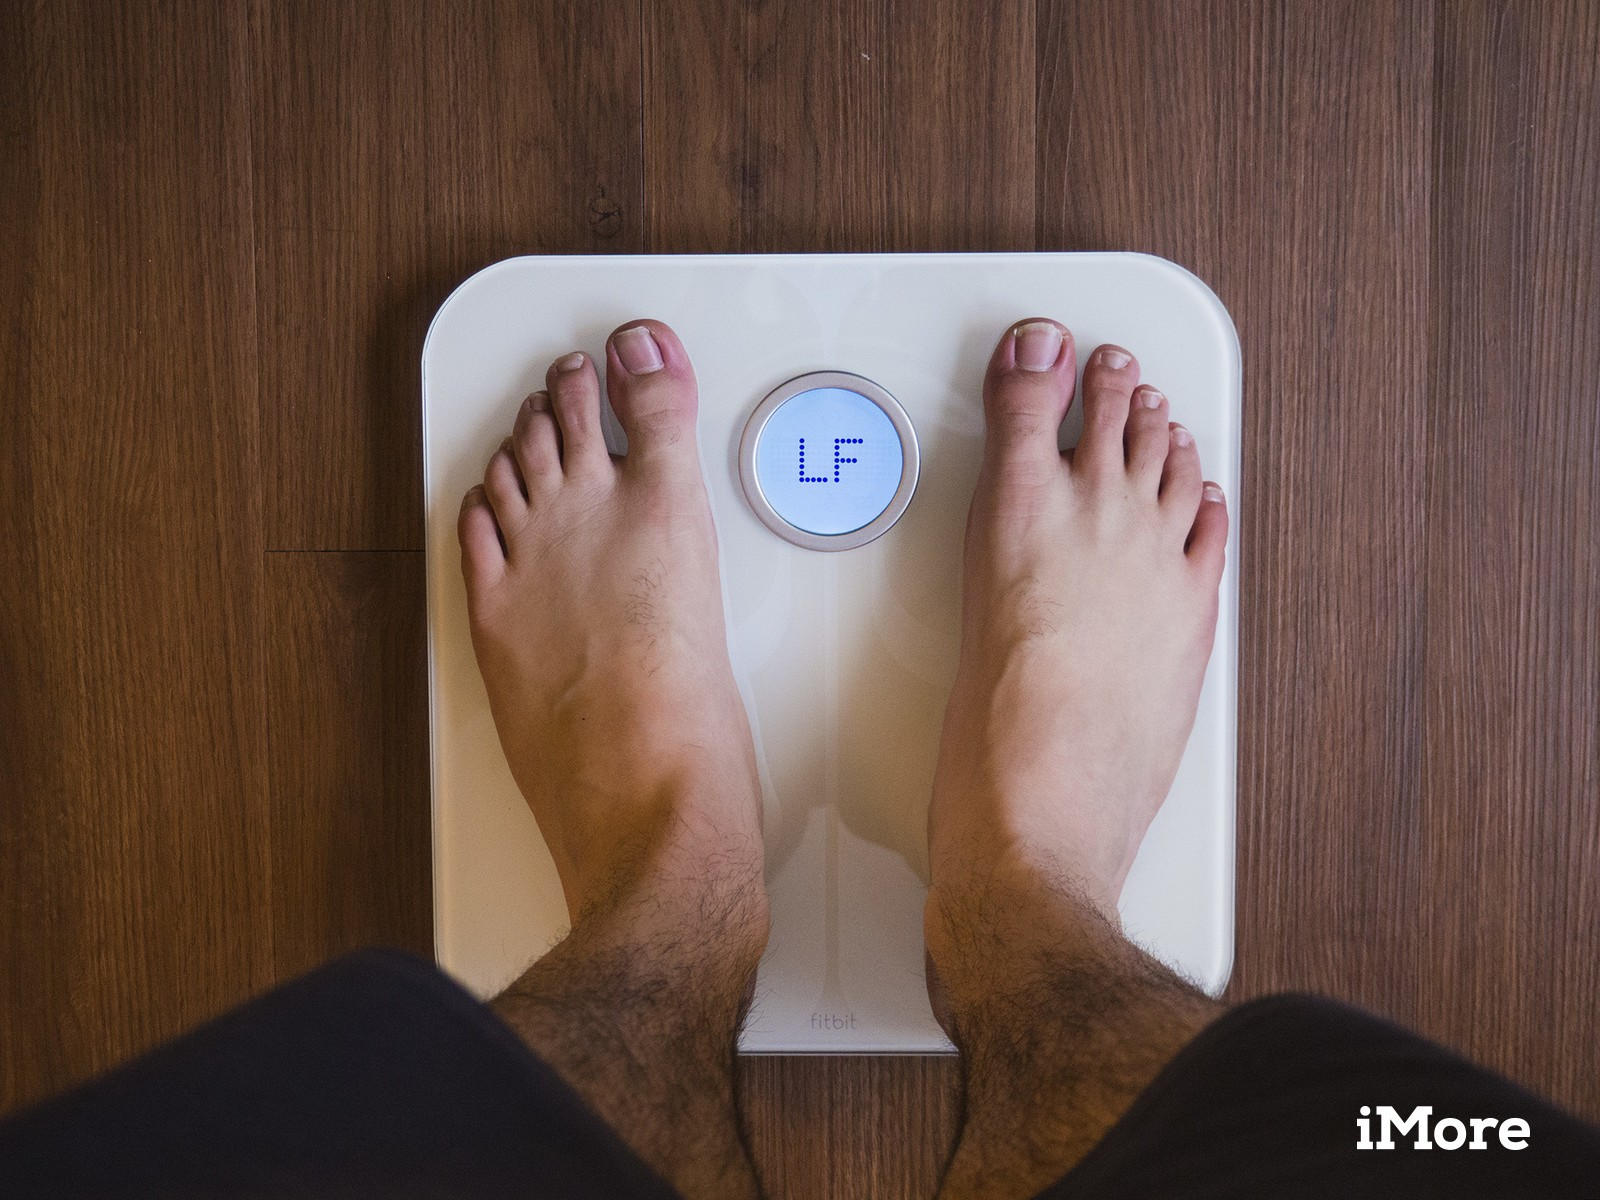 The Original Fitbit Aria Wi Fi Smart Scale Launched About Six Years Ago And Finally Got Around To Releasing A New Version 2 Late